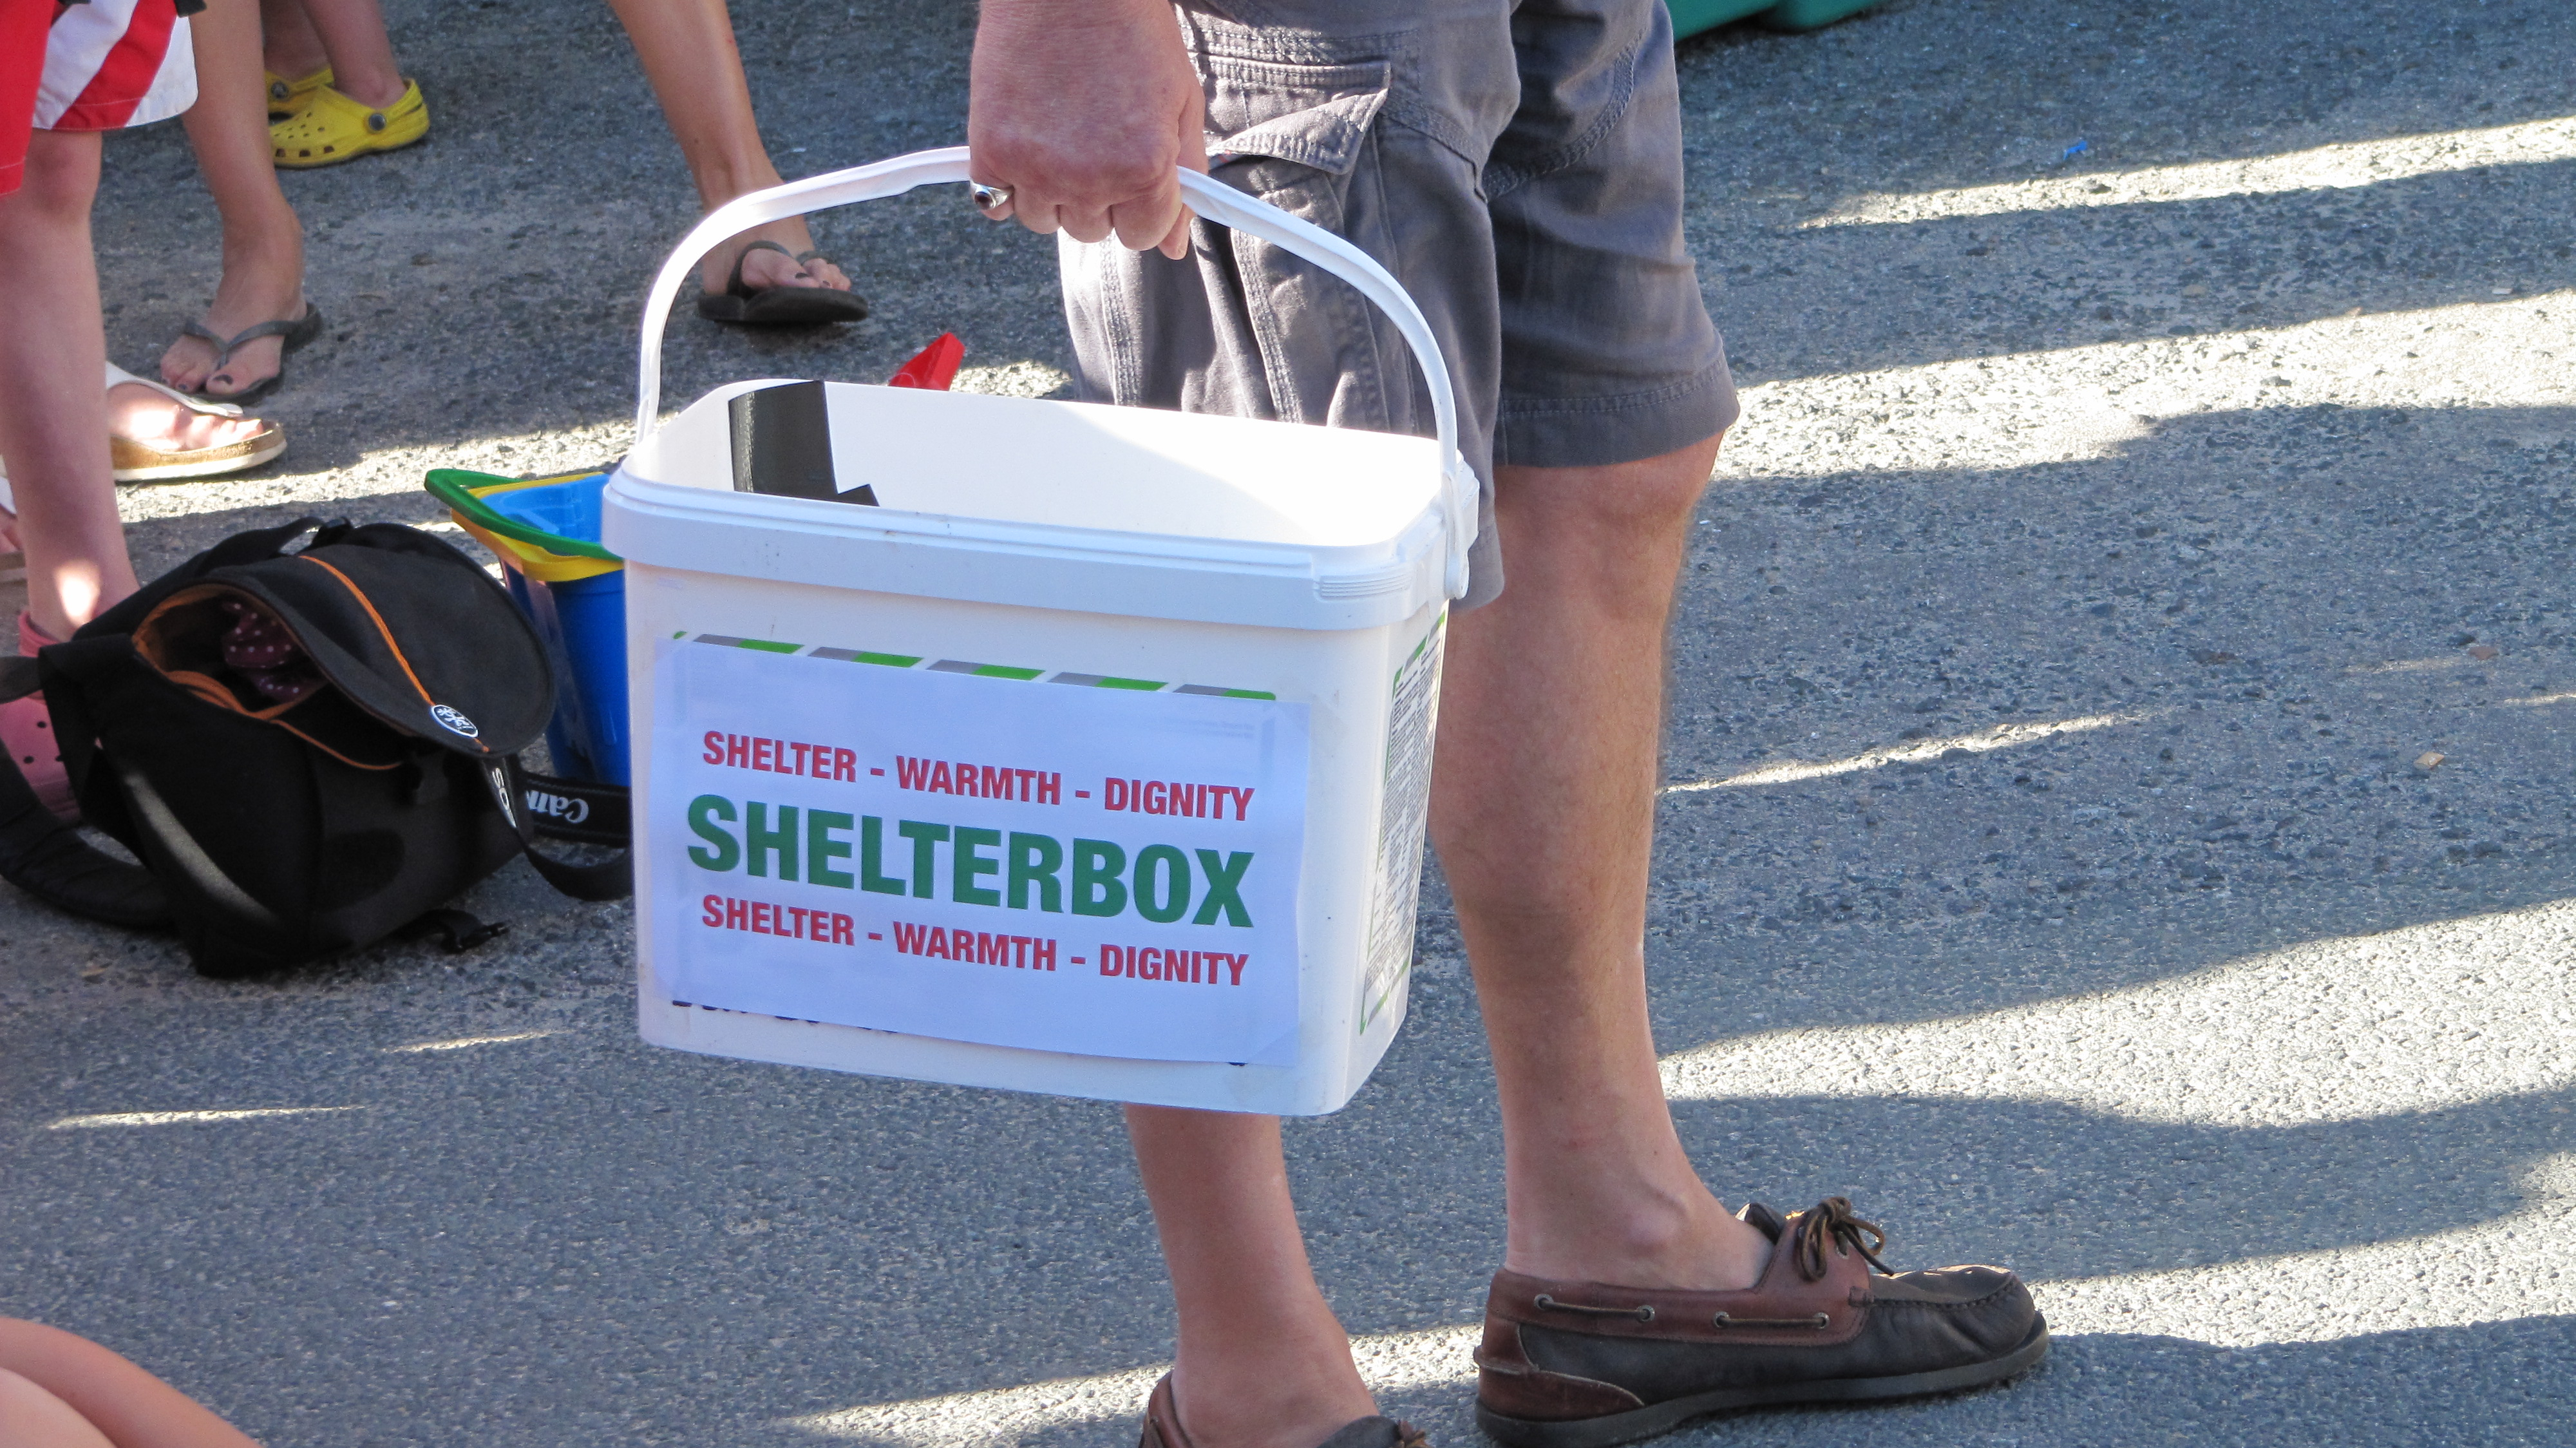 ShelterBox - Do Your Own Thing - Collection box